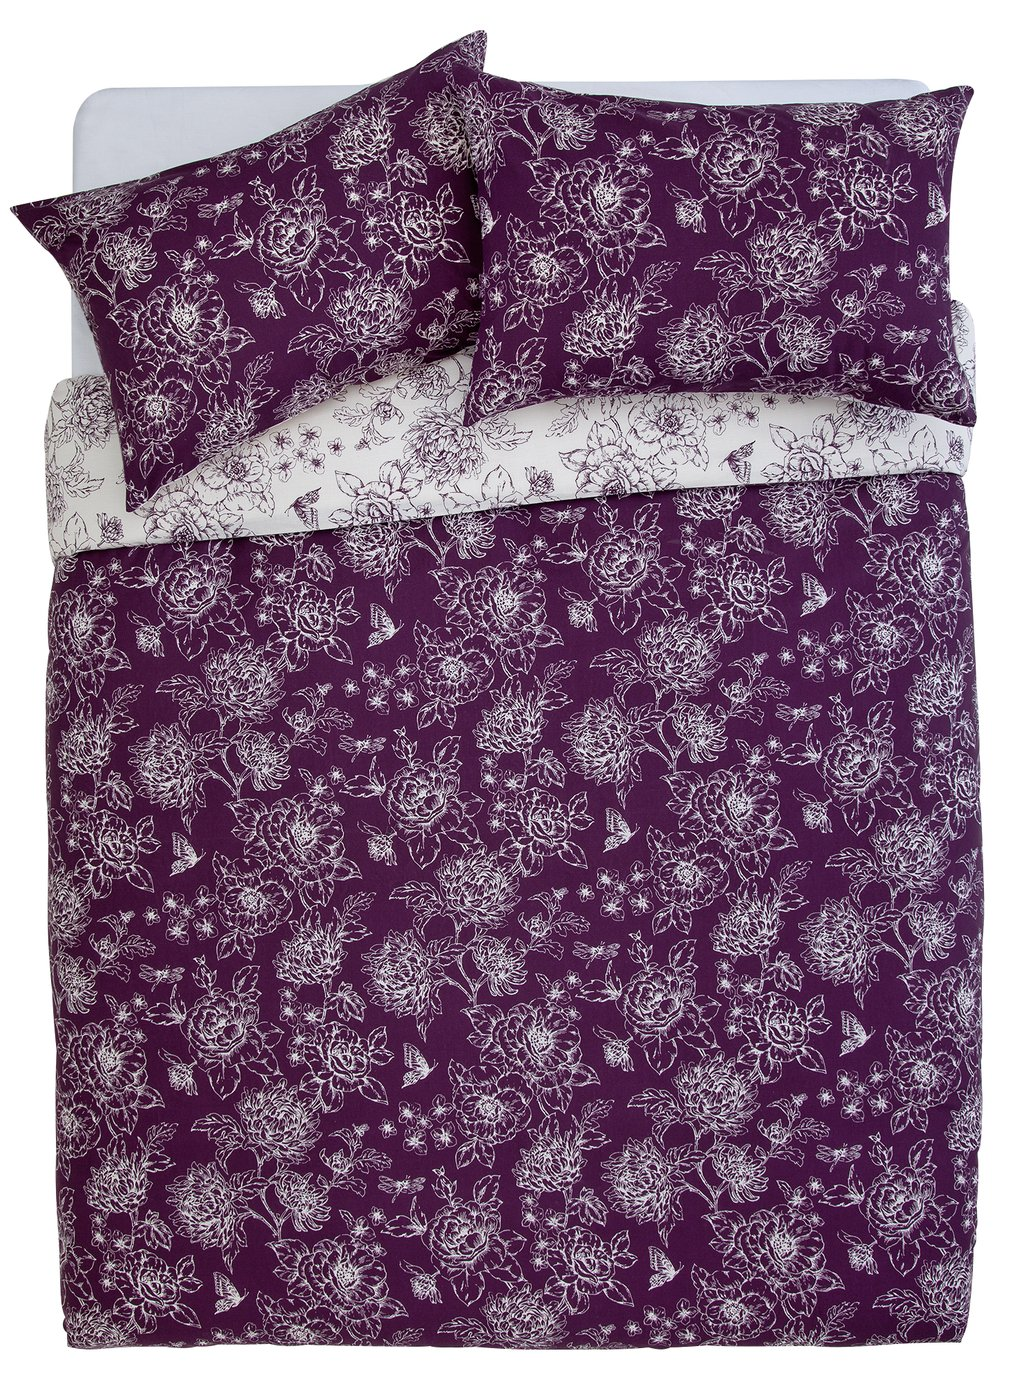 Argos Home Grace Plum Bedding Set - Kingsize